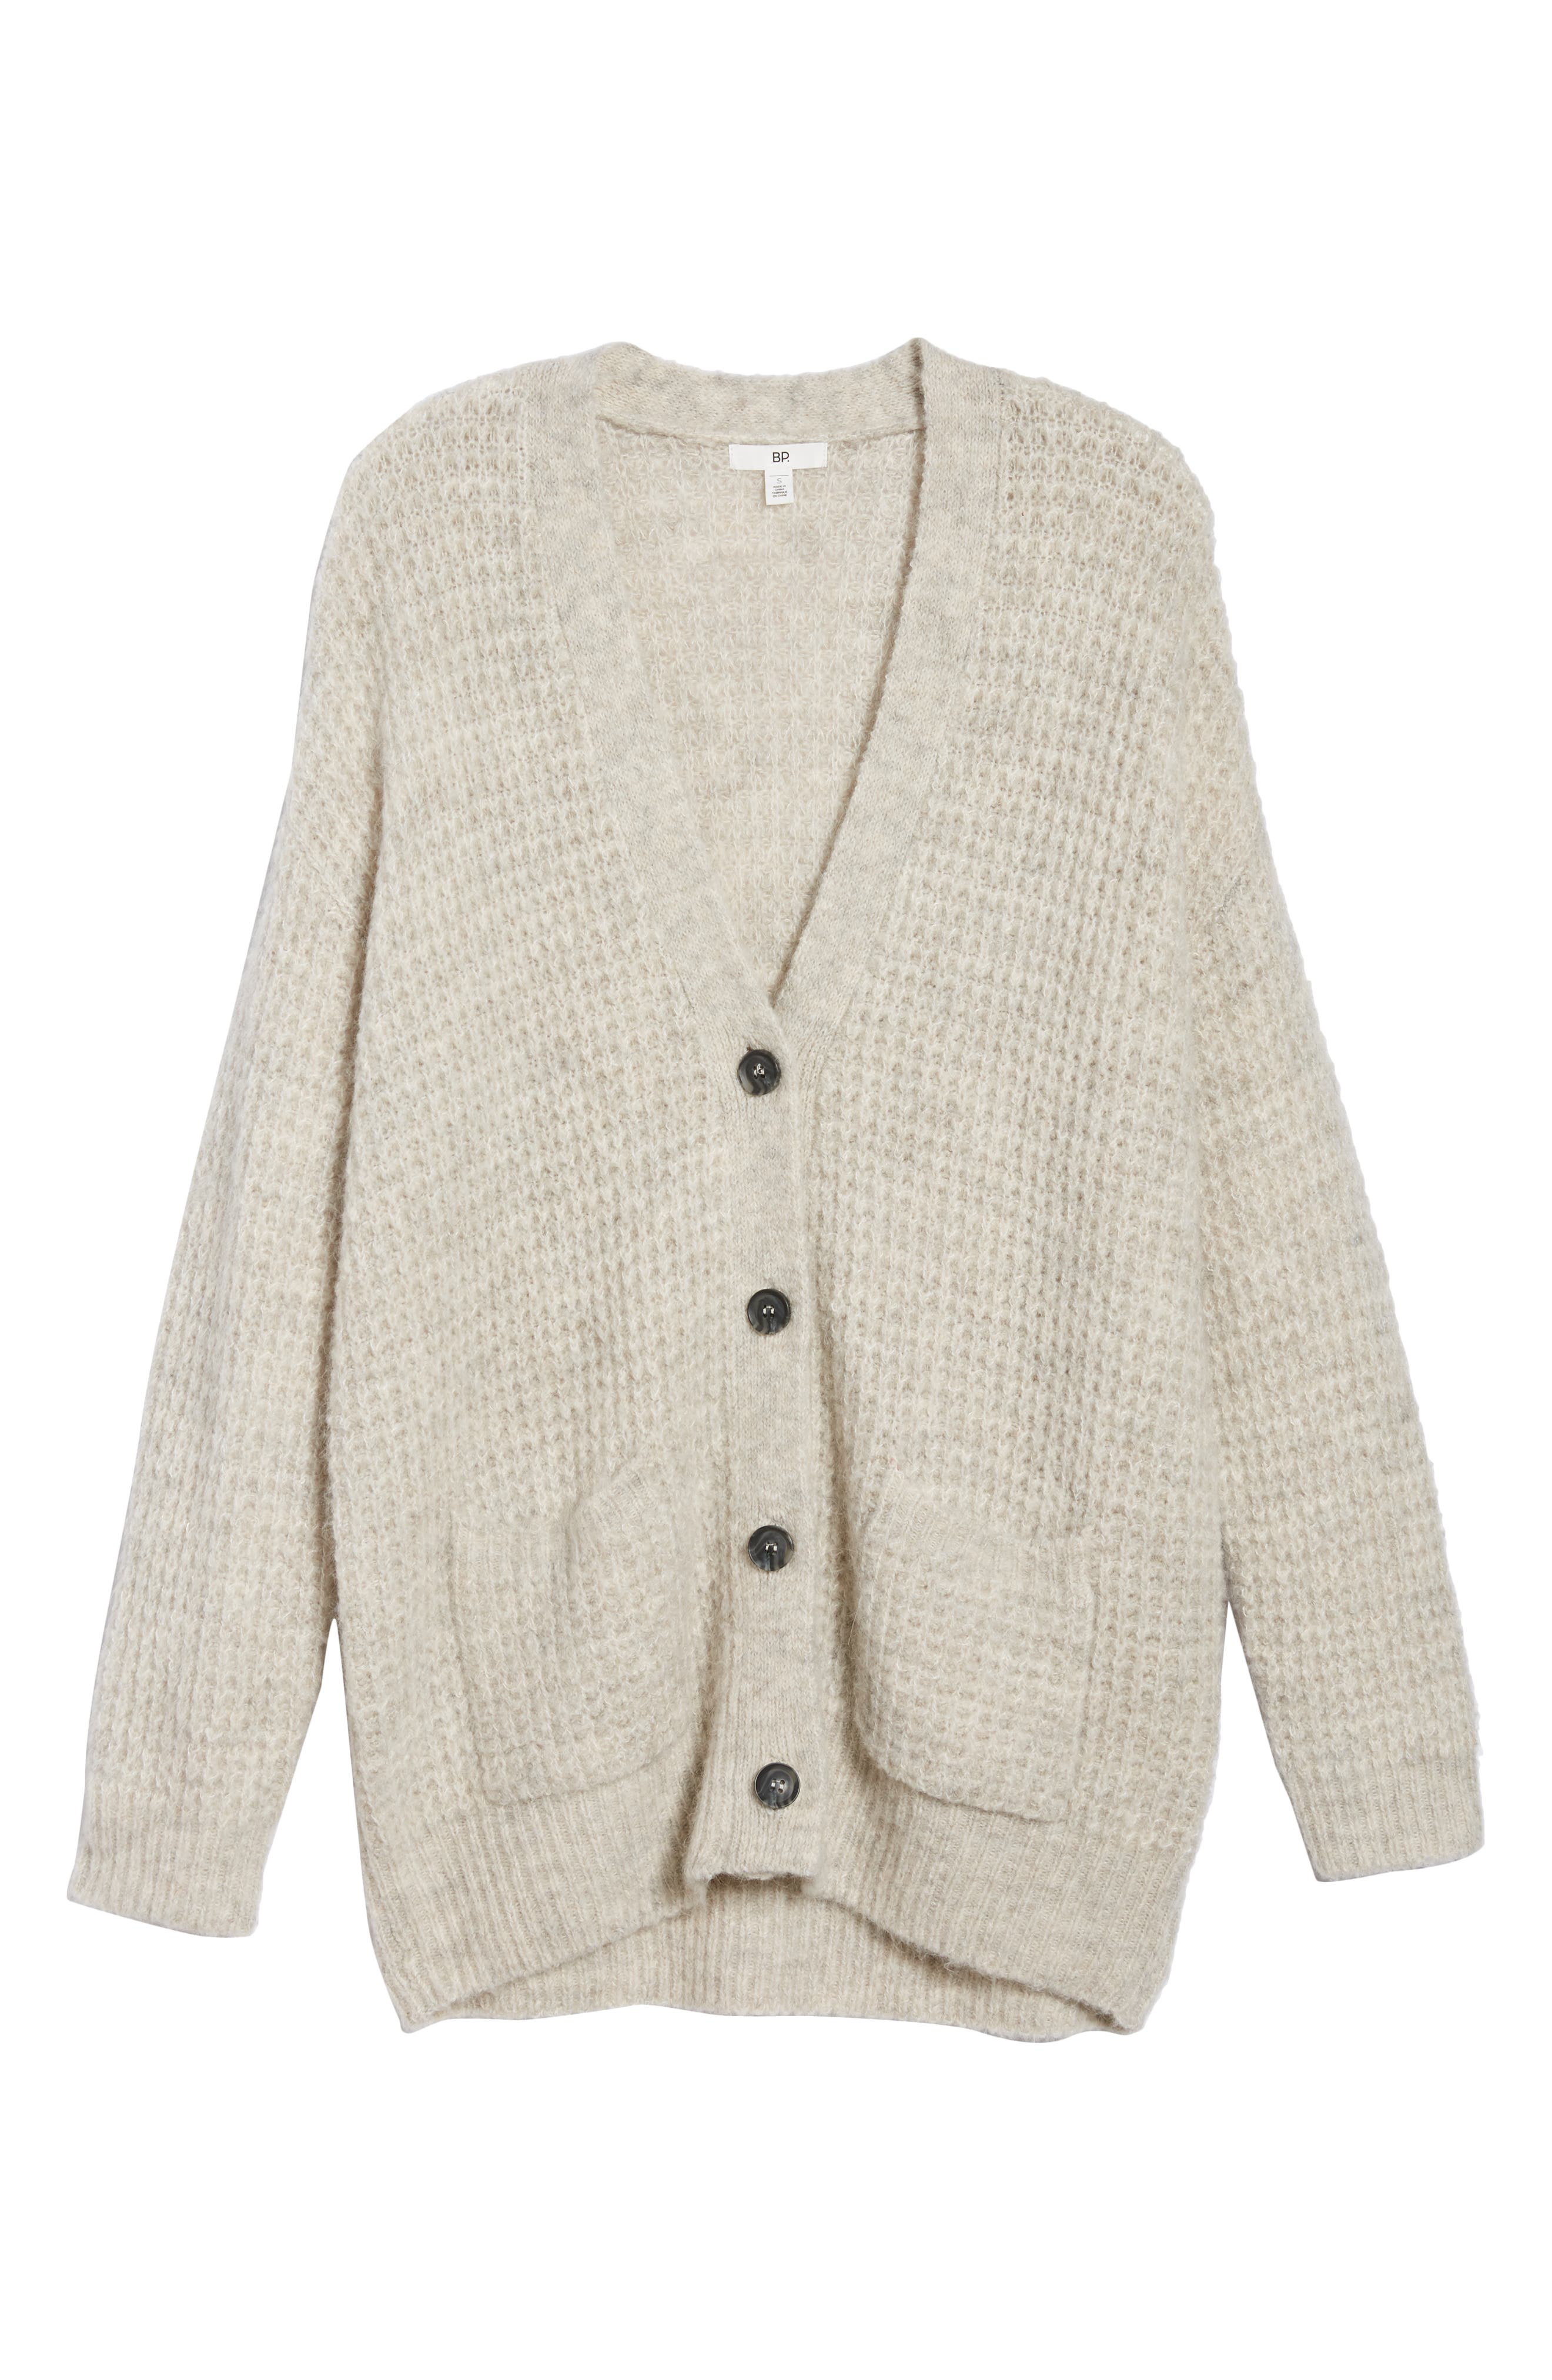 Oversized Waffle Stitch Cardigan,                             Alternate thumbnail 8, color,                             BEIGE BIRCH